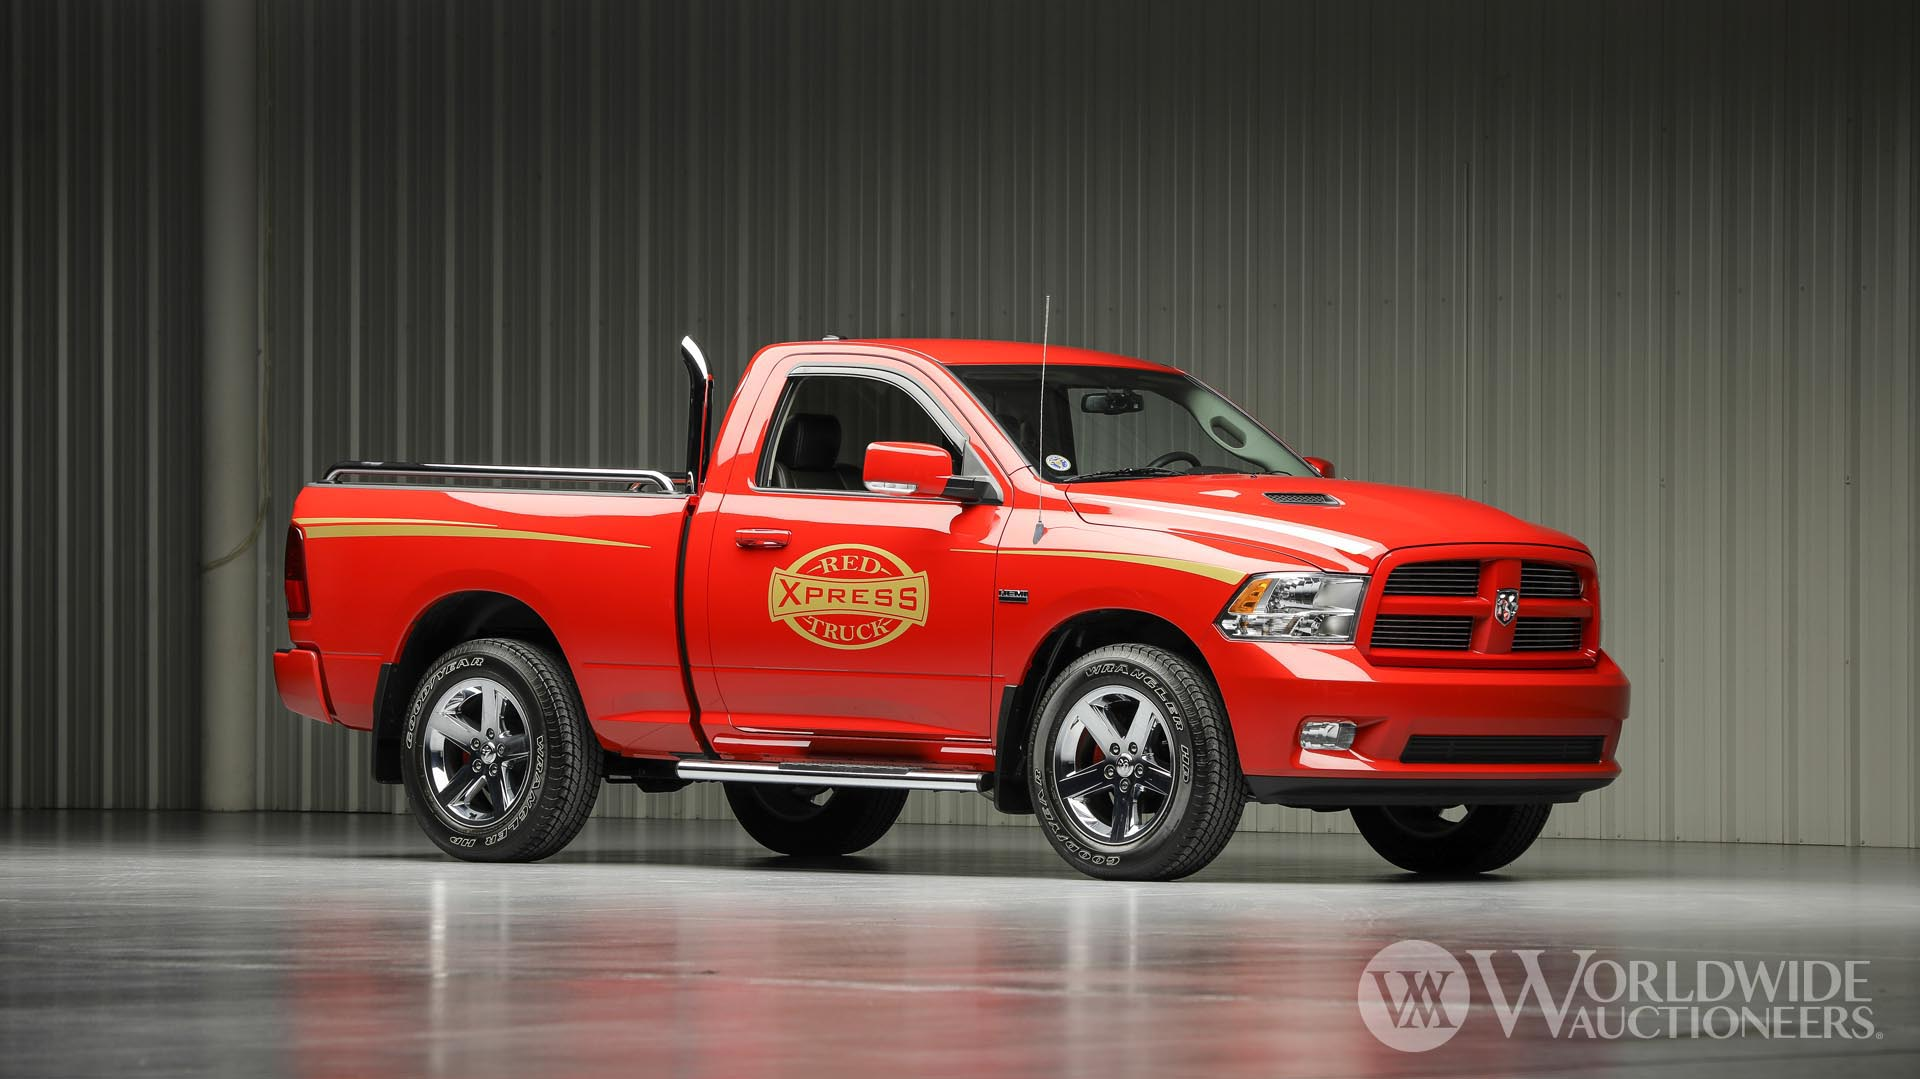 2011 Dodge  Ram Mr. Norm's 'Red Xpress Truck'